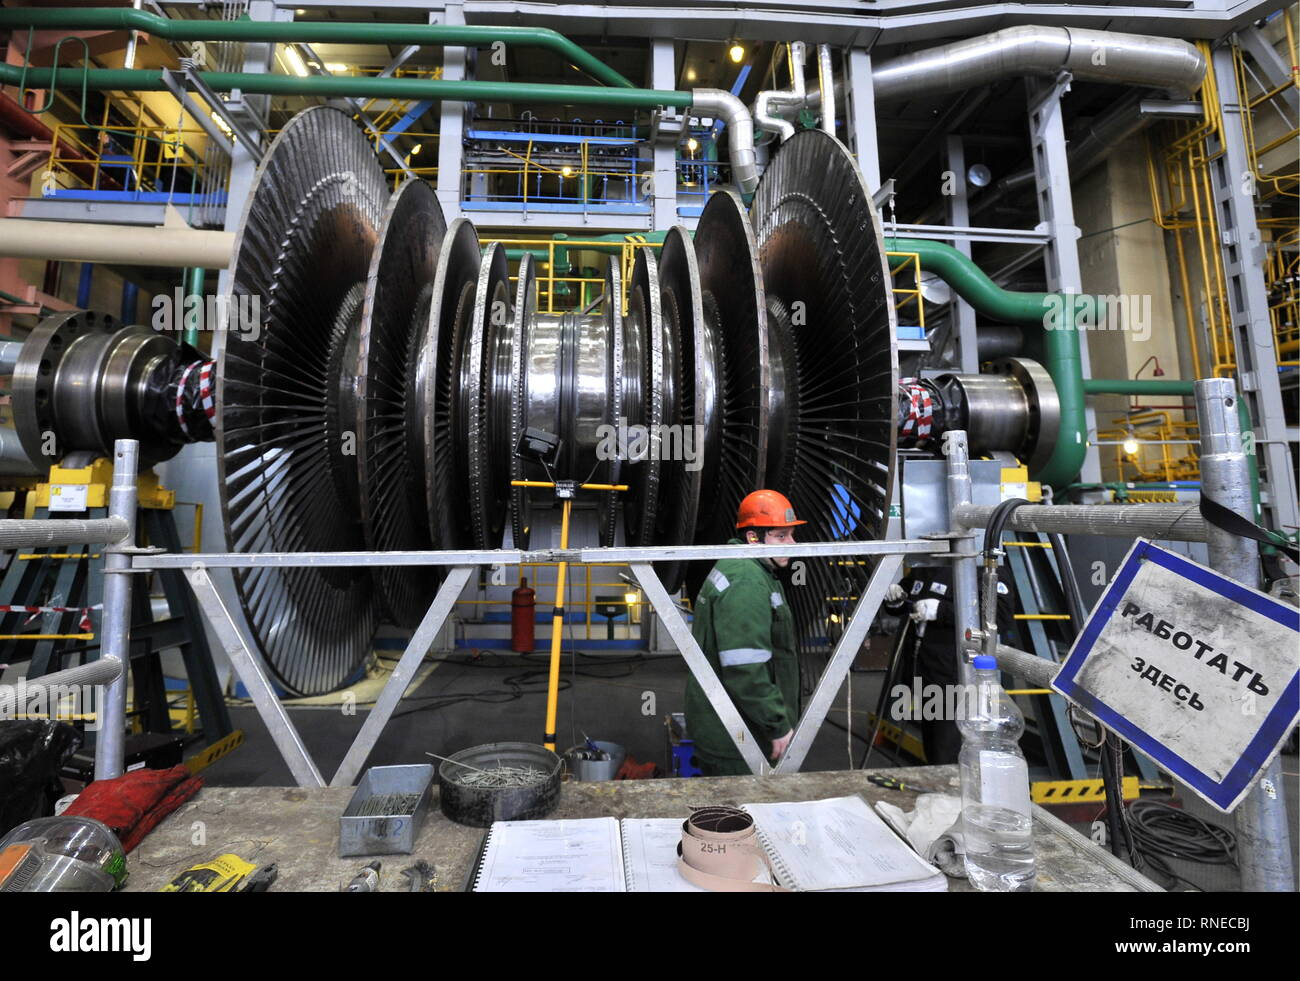 Russia. 18th Feb, 2019. MURMANSK REGION, RUSSIA - FEBRUARY 18, 2019: Workers repair equipment in the enginer room at the Kola Nuclear Power Plant on the shore of Lake Imandra, its four reactors of 440MWt in capacity each accounting in general for 60% of energy being supplied to the Murmansk Region. This year begins a major reconstruction project aimed in particular at extending the reactor No.2 service life for another 15 years. Lev Fedoseyev/TASS Credit: ITAR-TASS News Agency/Alamy Live News Stock Photo